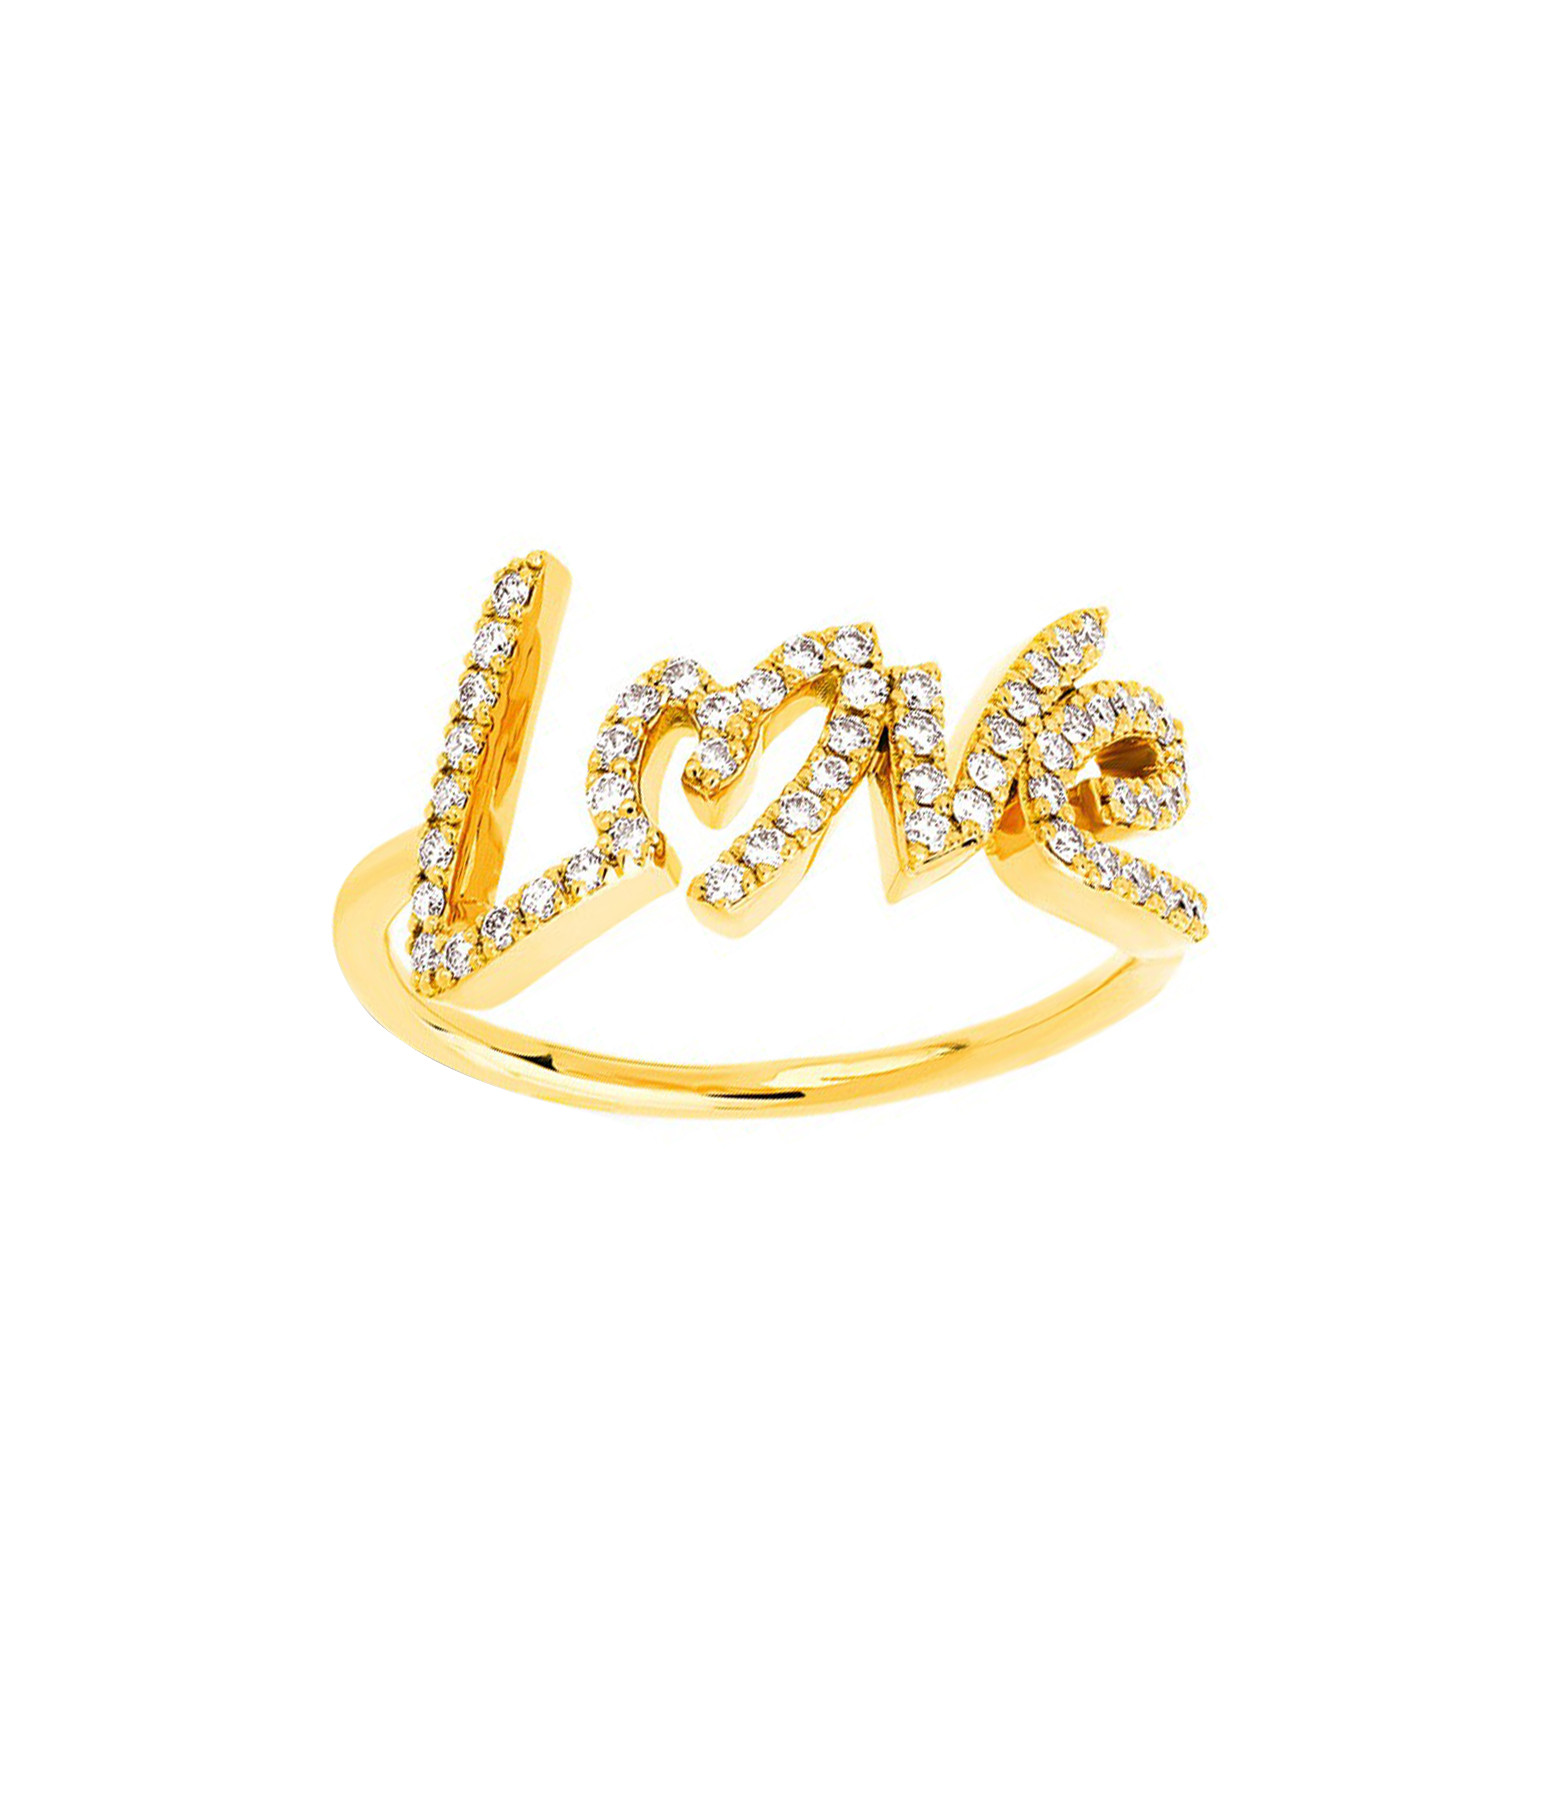 NAVA JOAILLERIE - Bague Love Diamants Or Jaune